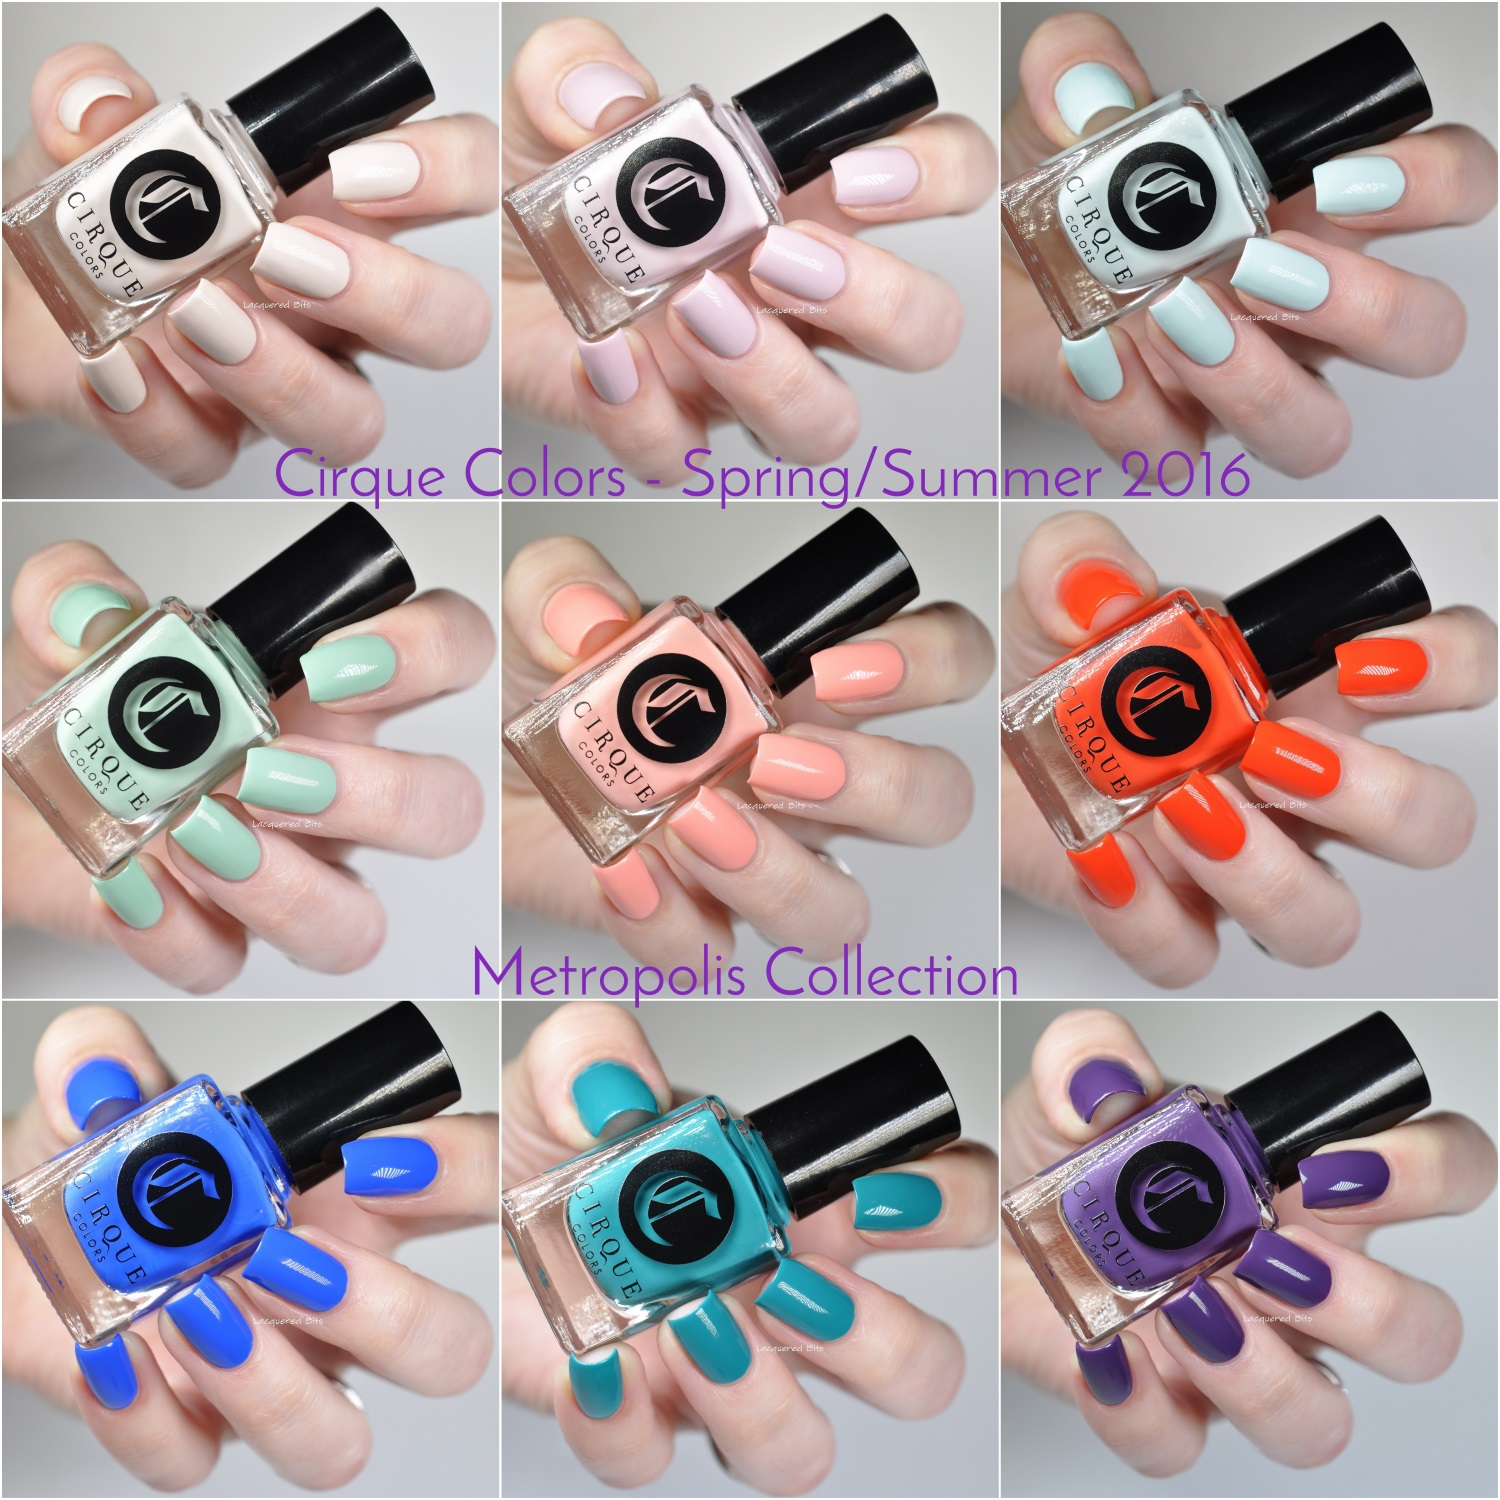 Cirque Colors Spring/Summer 2016 - Metropolis Collection - Swatches & Review